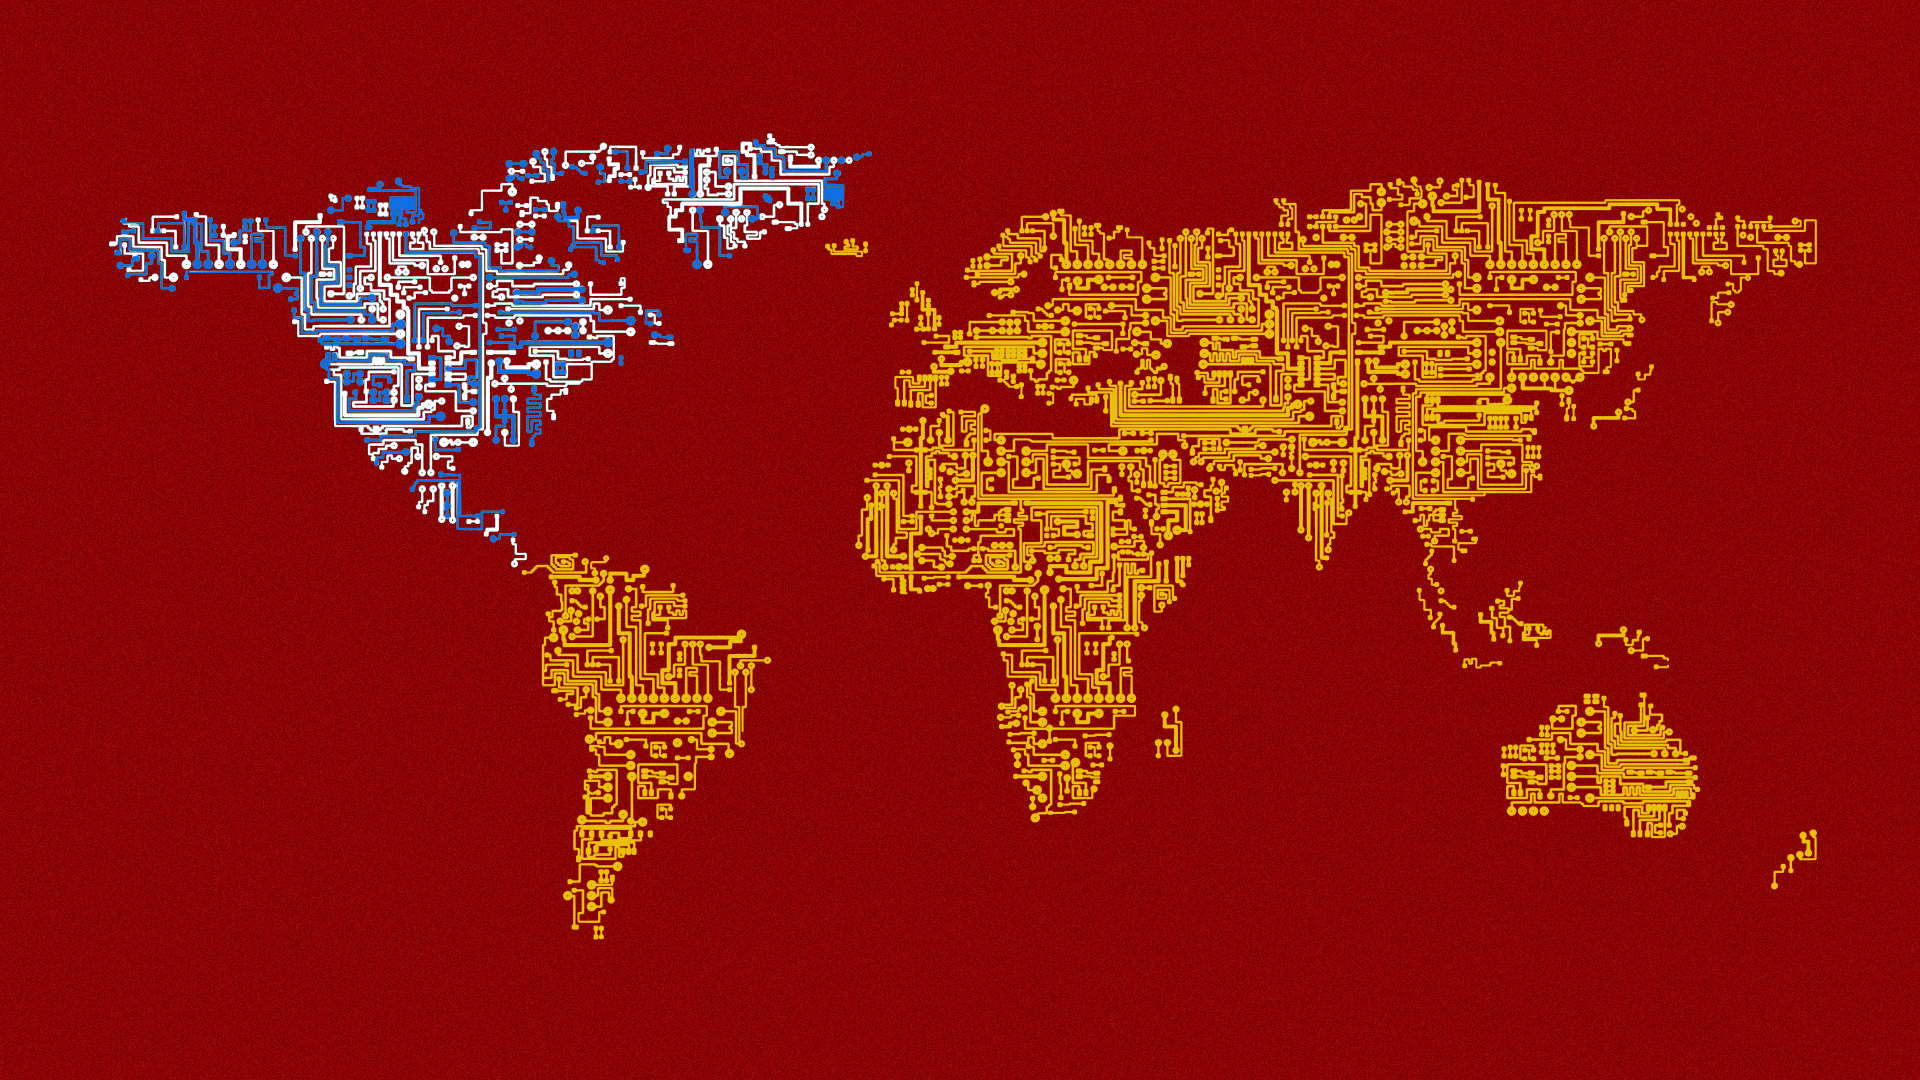 Illustration of the world as a circuitry map showing a Chinese presence in South America, Africa, Europe, Asia, and Australia, while only North America shows an American presence.